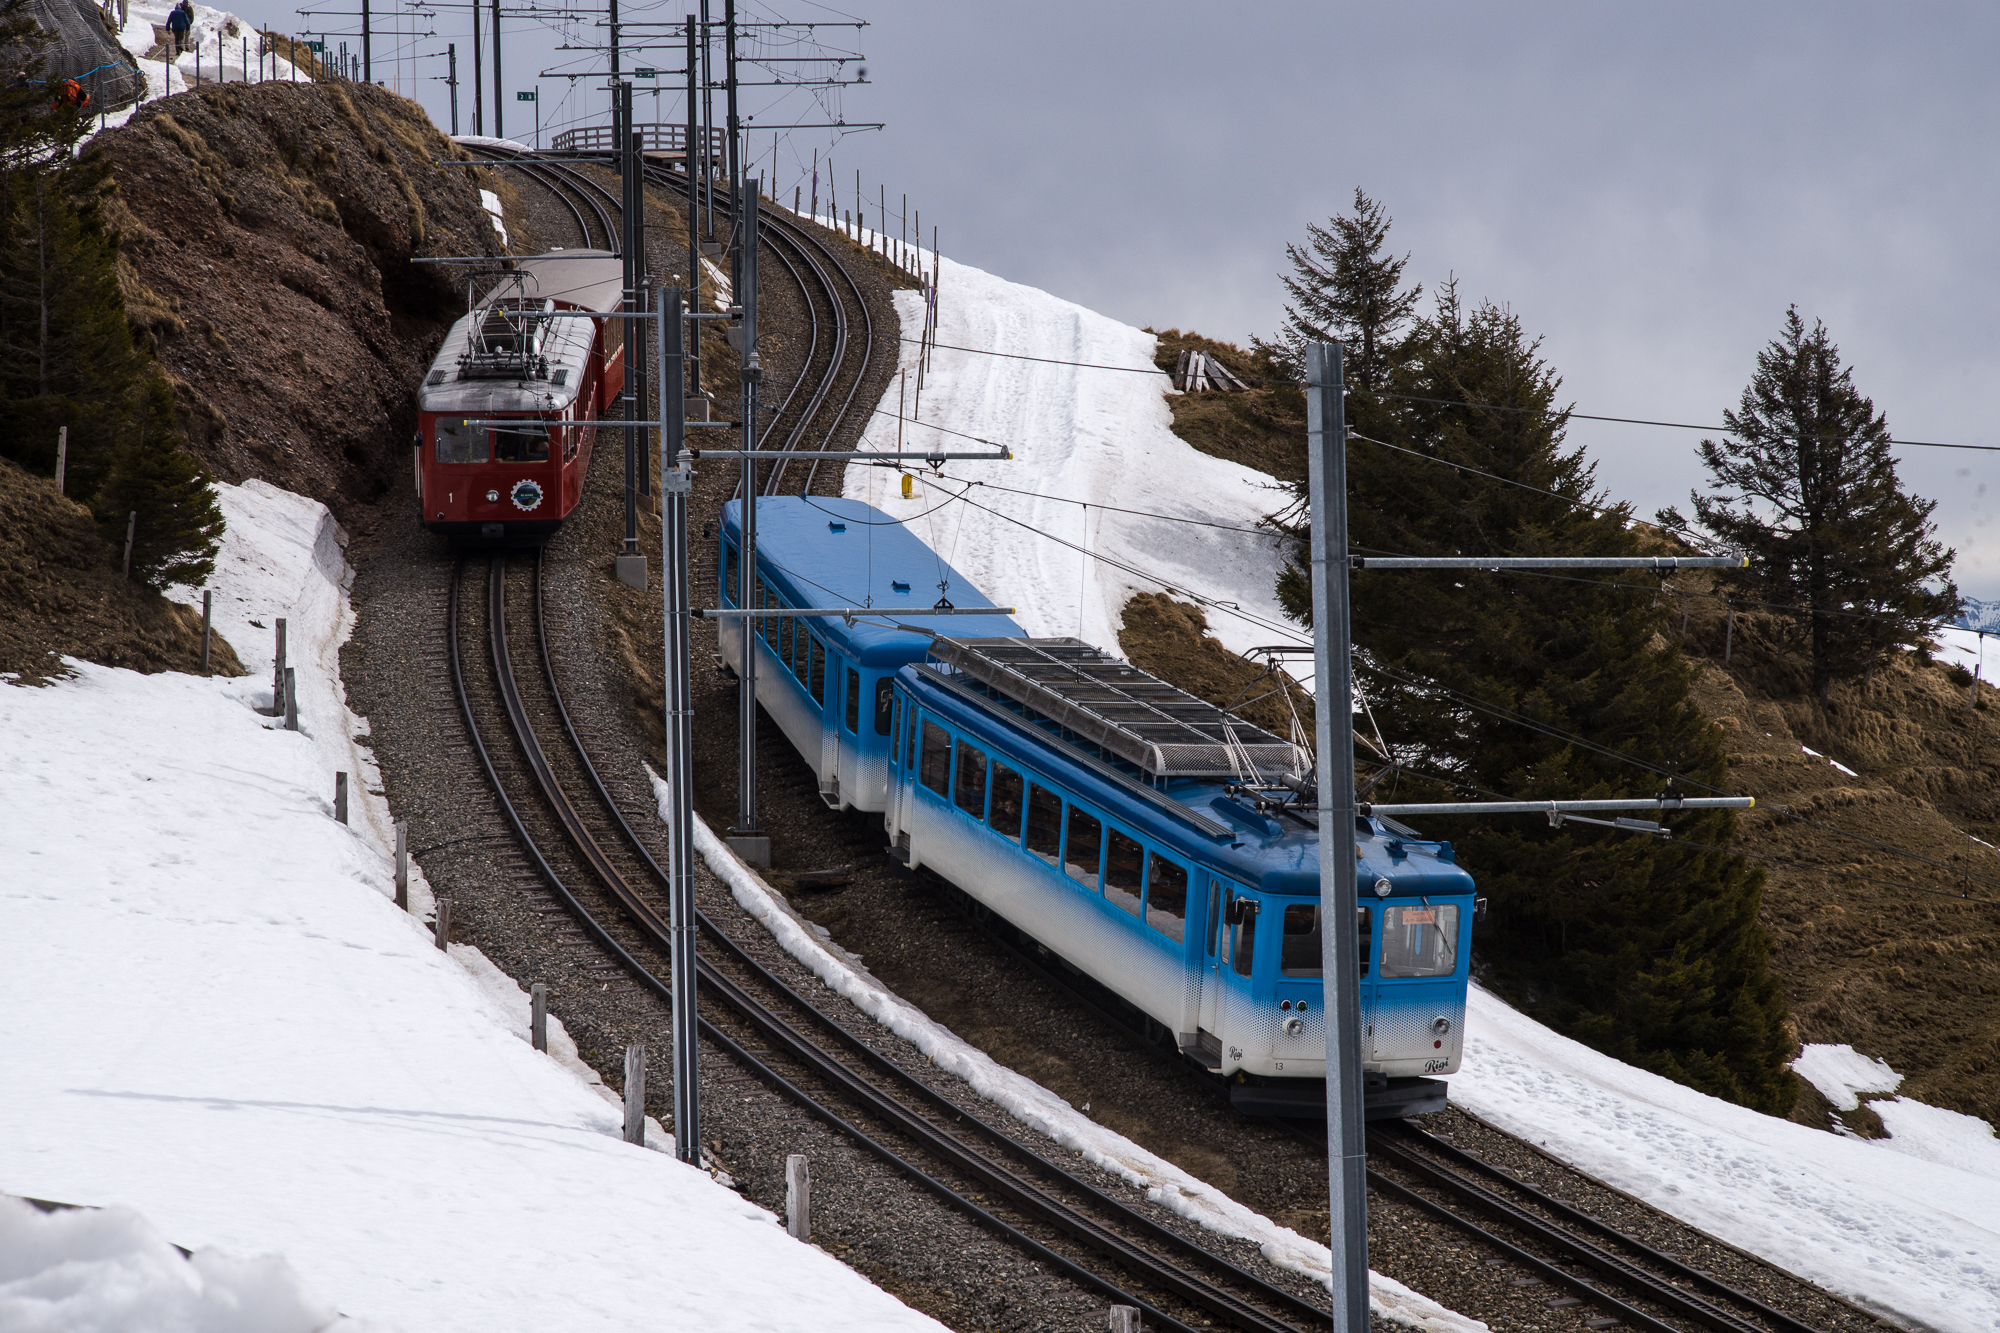 Passing trains on the cogged railway